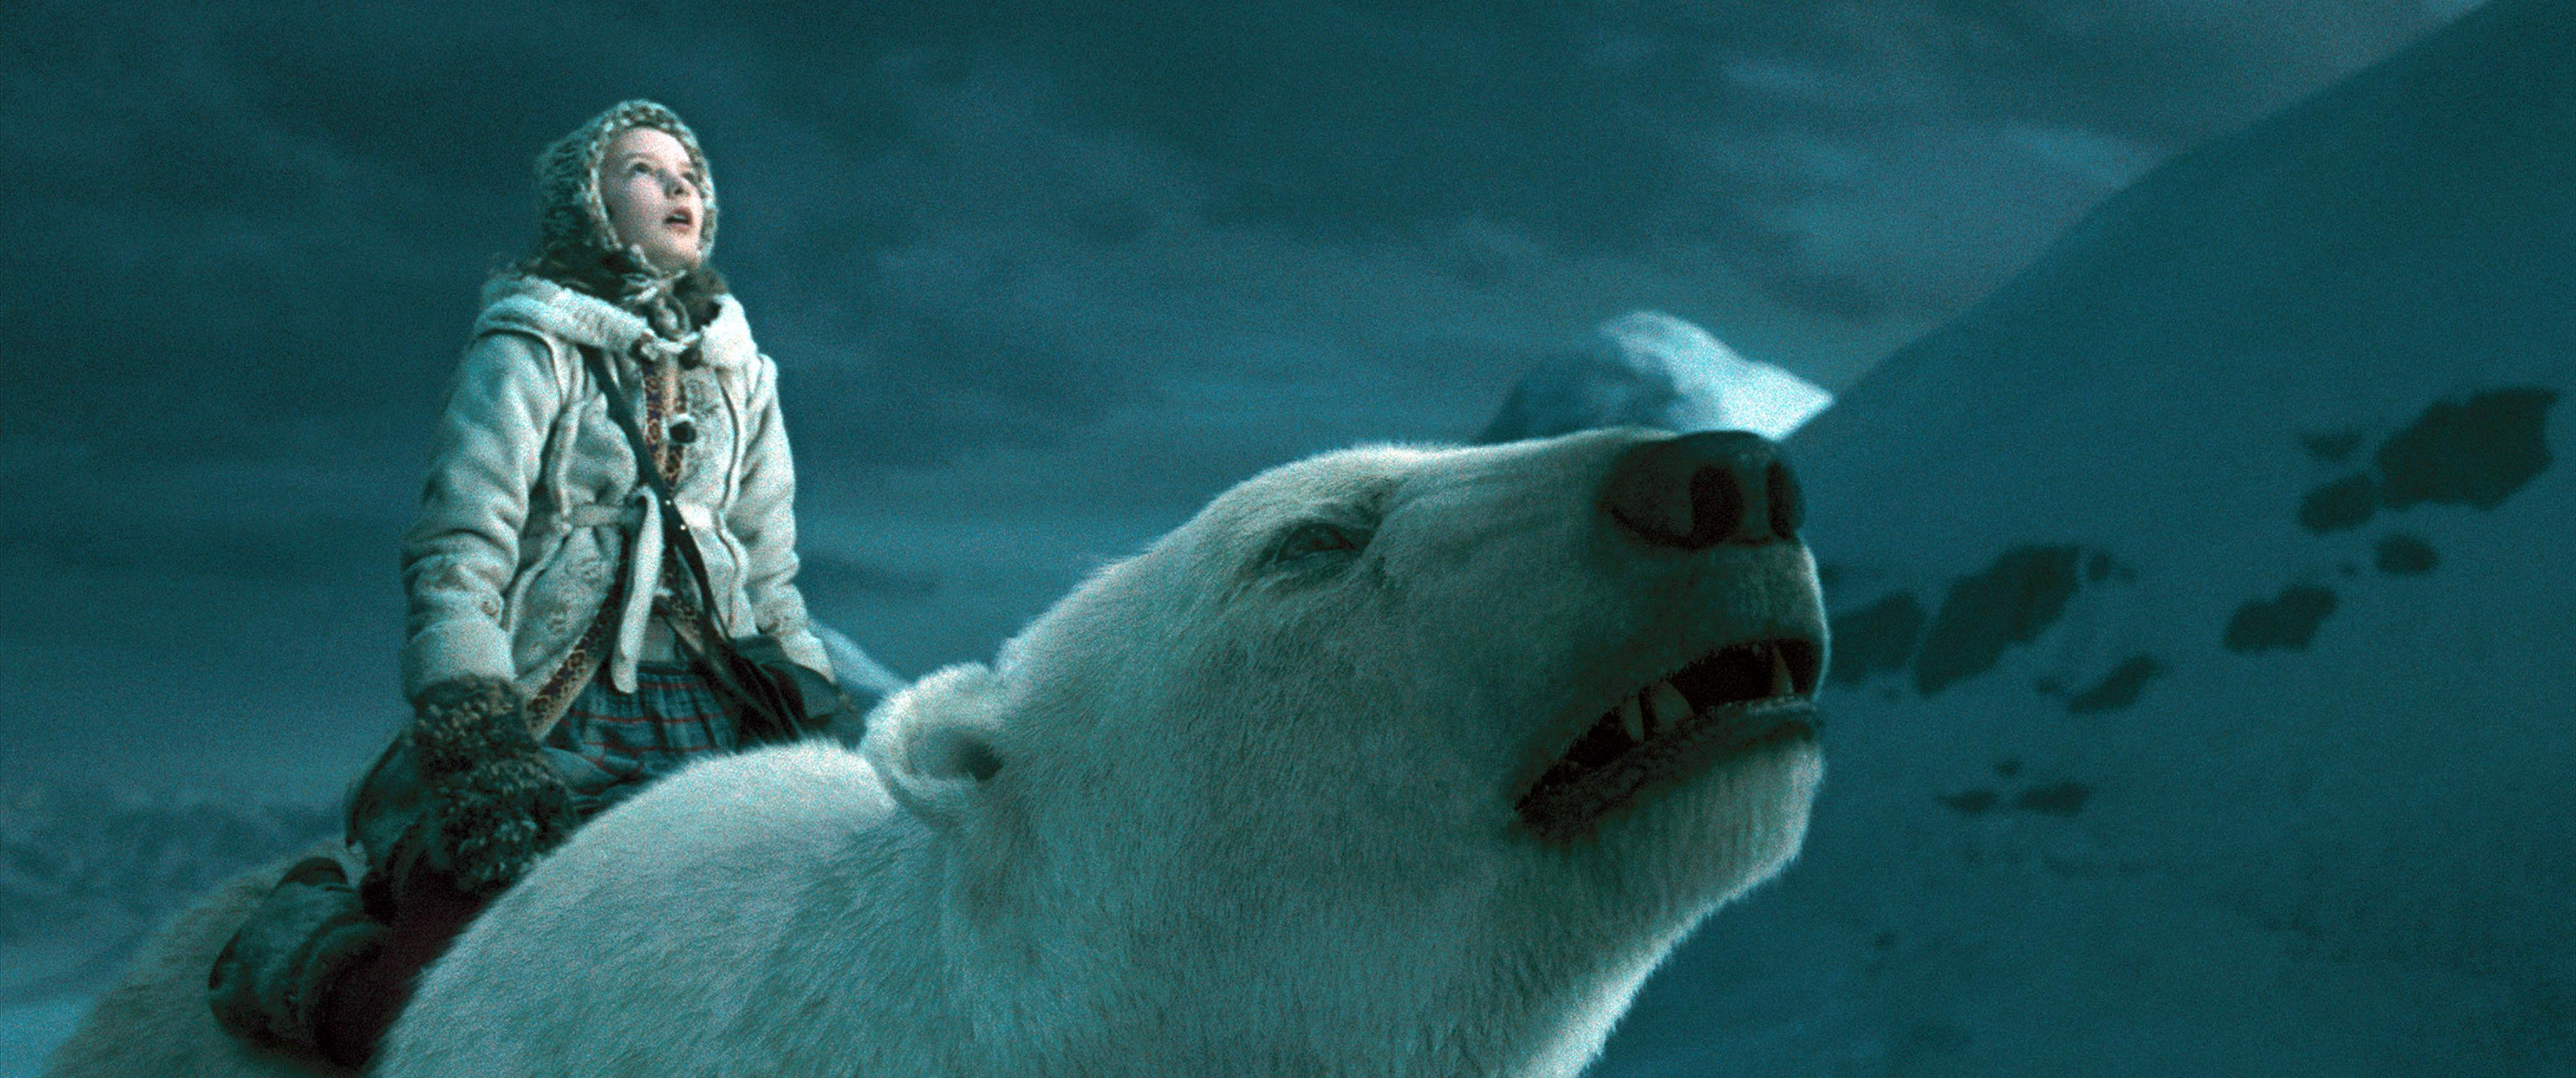 movies the golden compass polar bears children 4096x1714 wallpapers